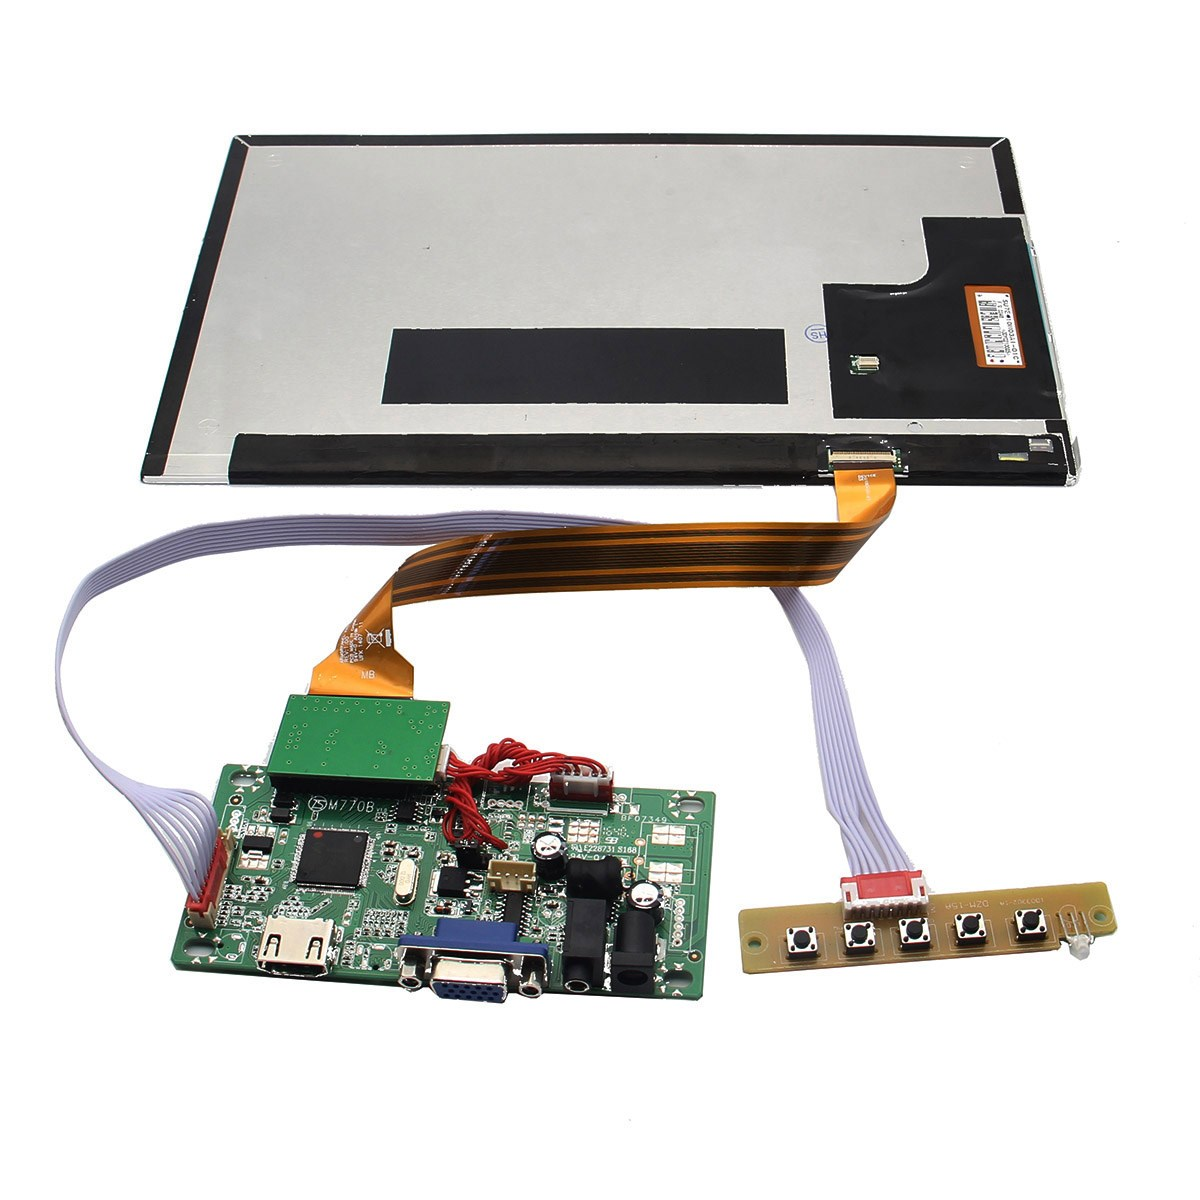 New Arrival 10 Inch Full HD 1920 x 1080 208PPI Independent Display TFT Screen For Raspberry Pi / Orange Pi / PC(China (Mainland))